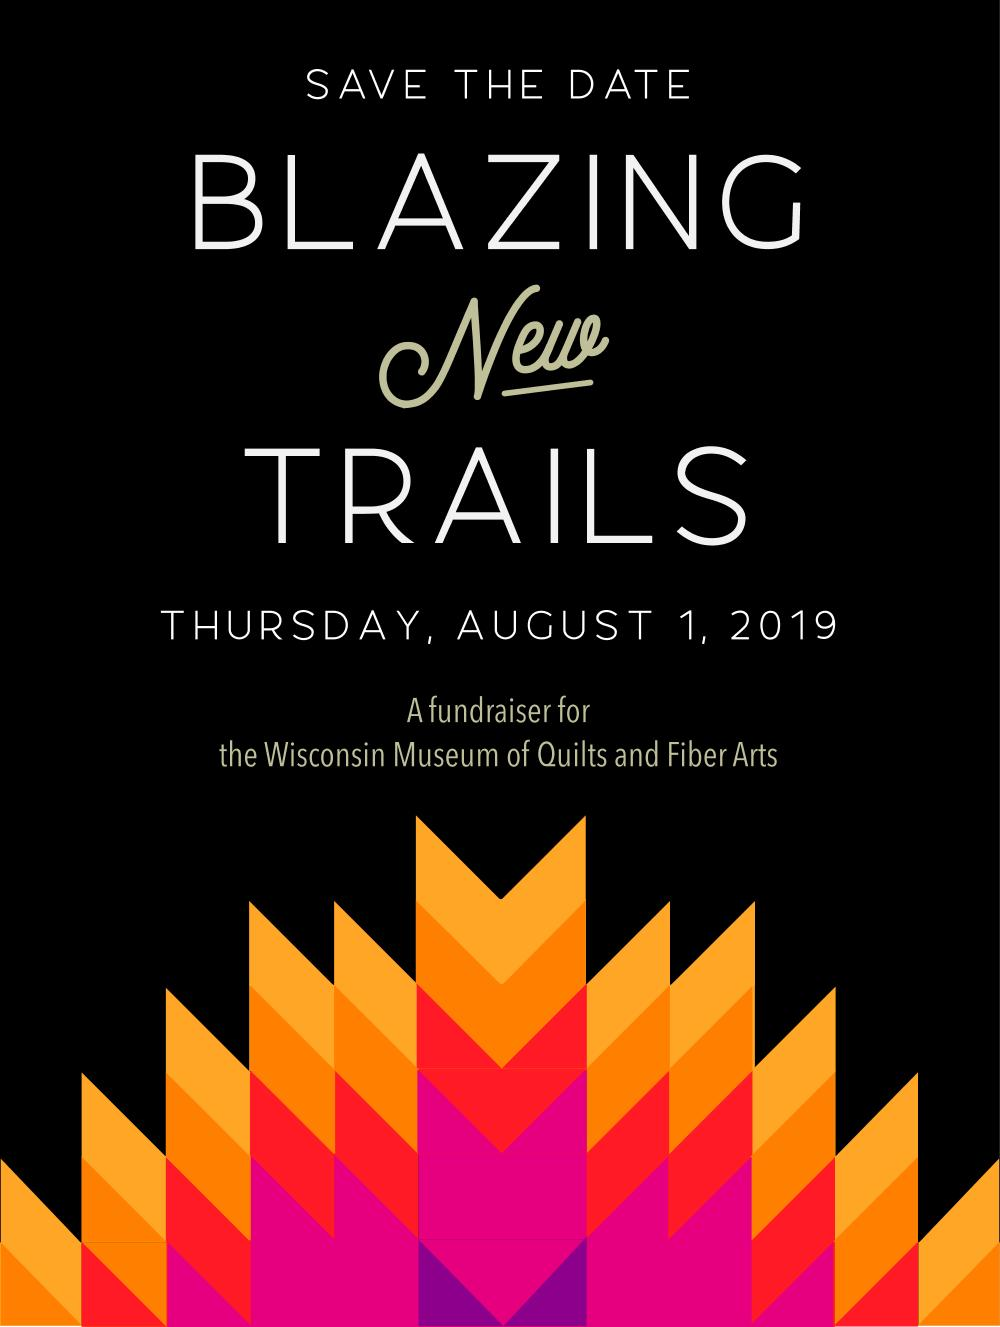 Blazing New Trails jpg_5-16-19.jpg